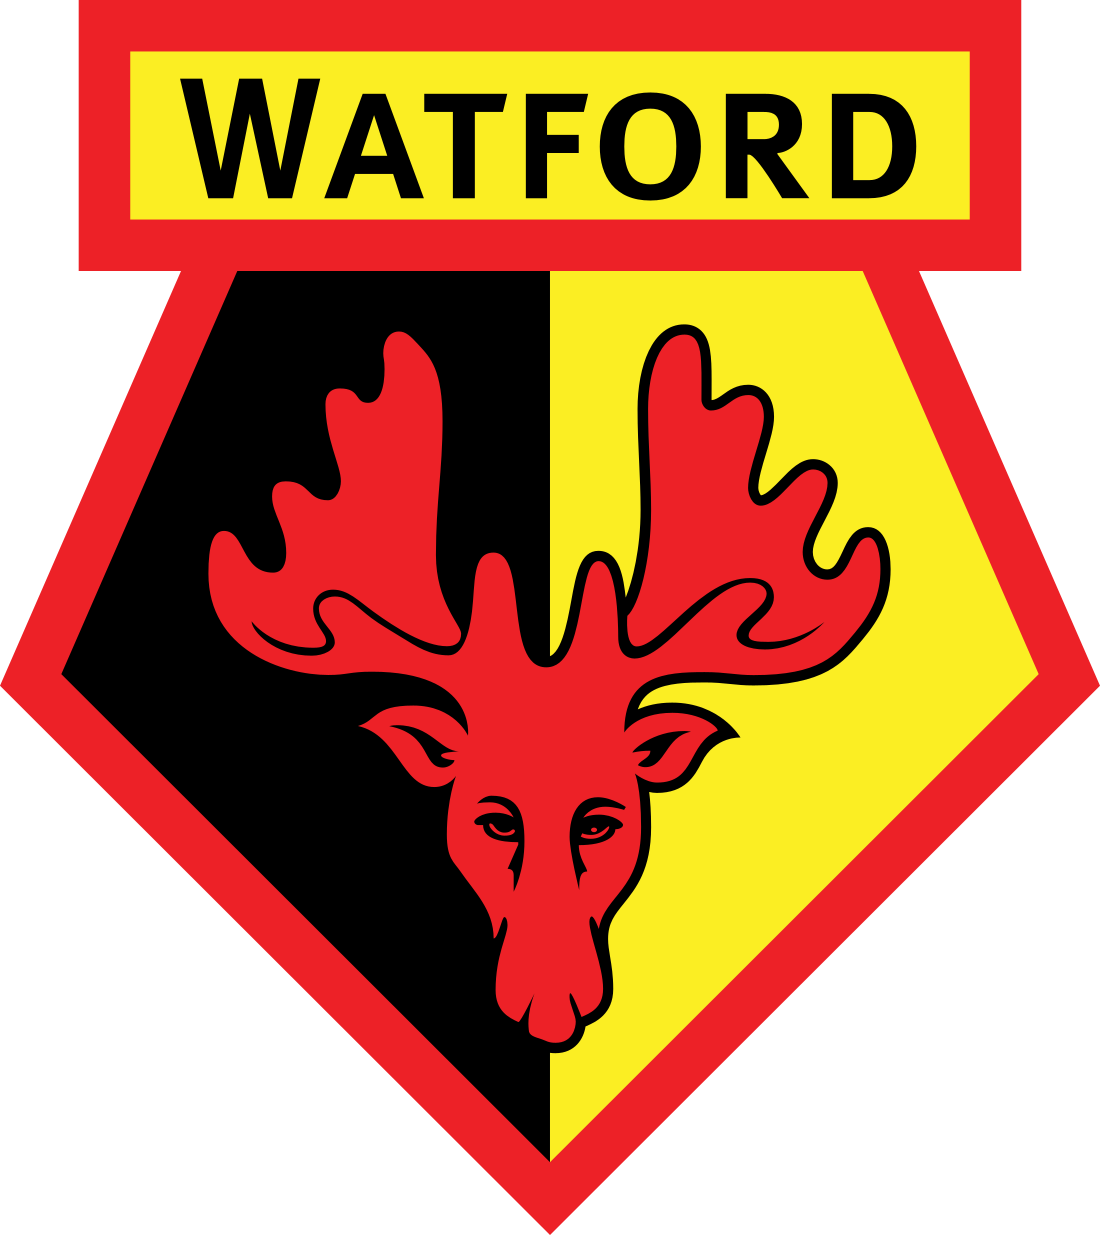 watford logo 3 - Watford Football Club Logo - Badge